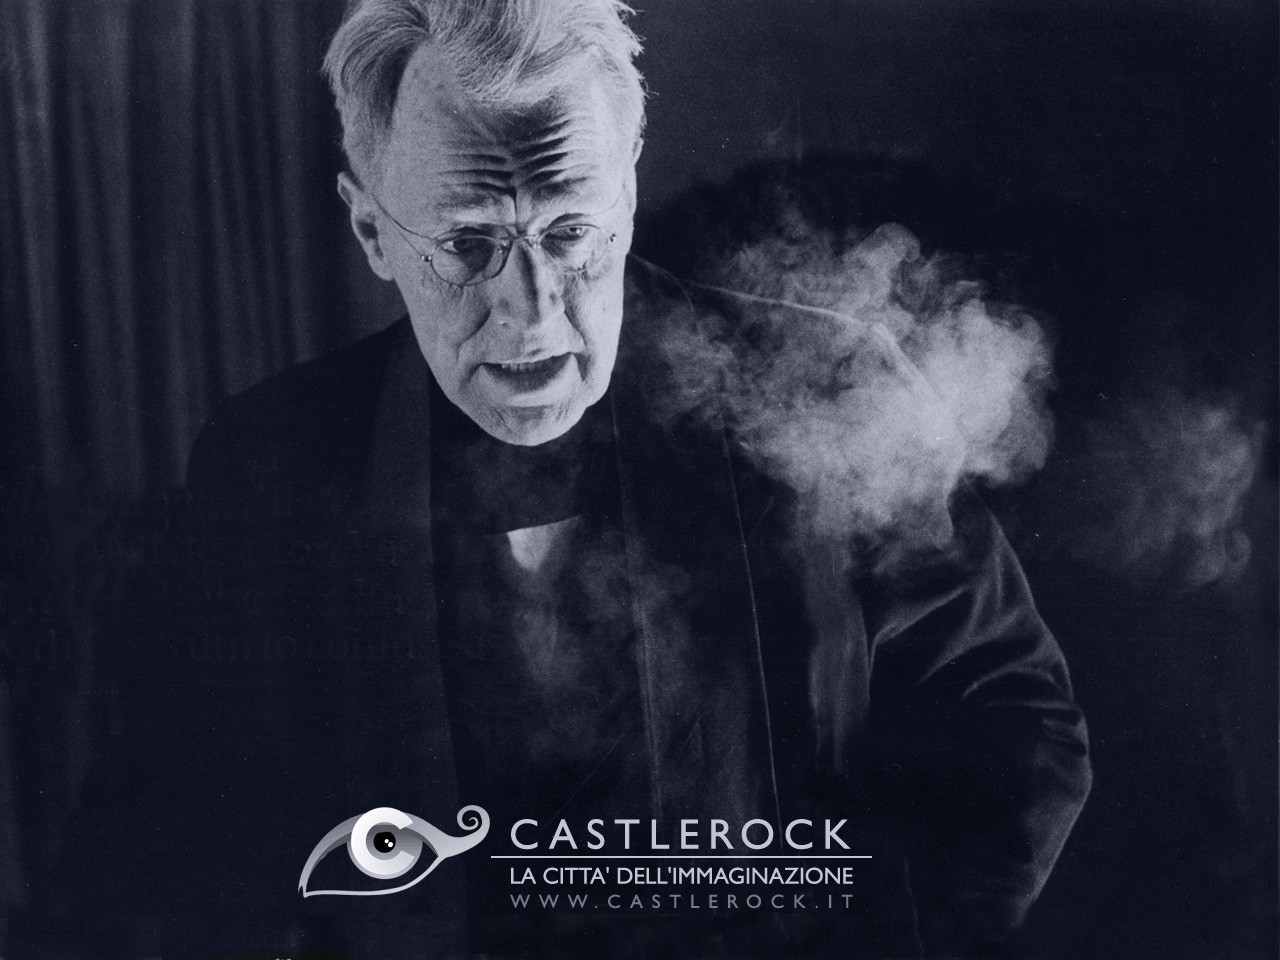 Wallpaper del film L'esorcista con Max von Sydow